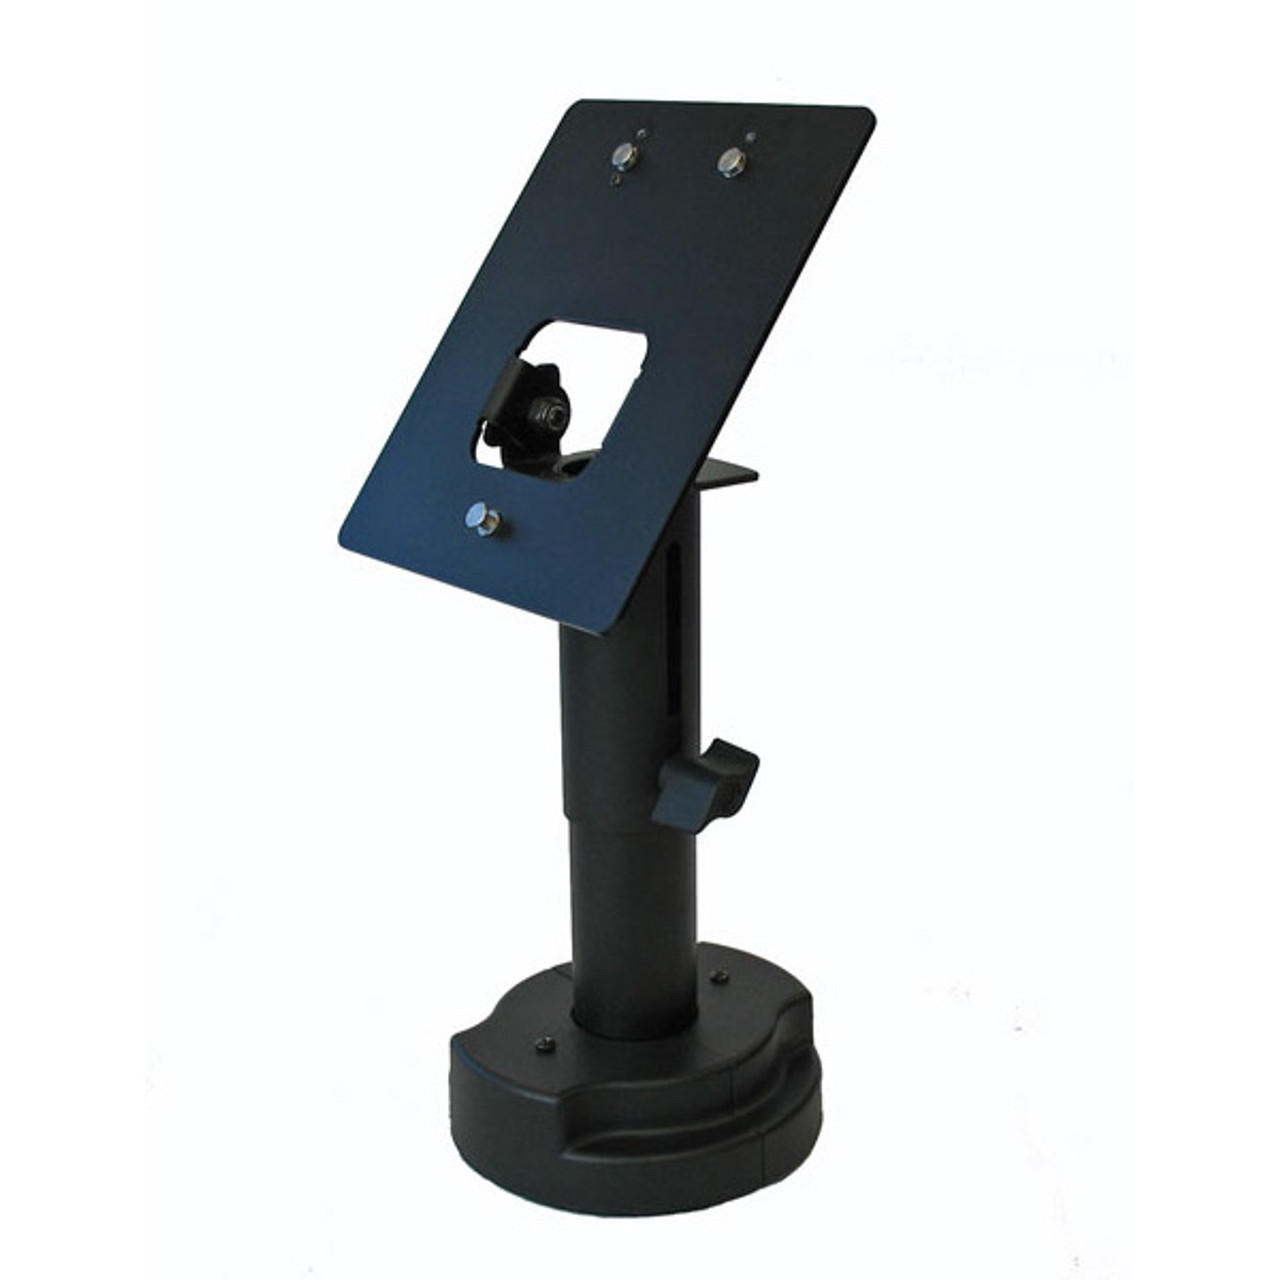 Swivel Stands Credit Card Stand Telescoping Pedestal Honeywell HHP TT8500